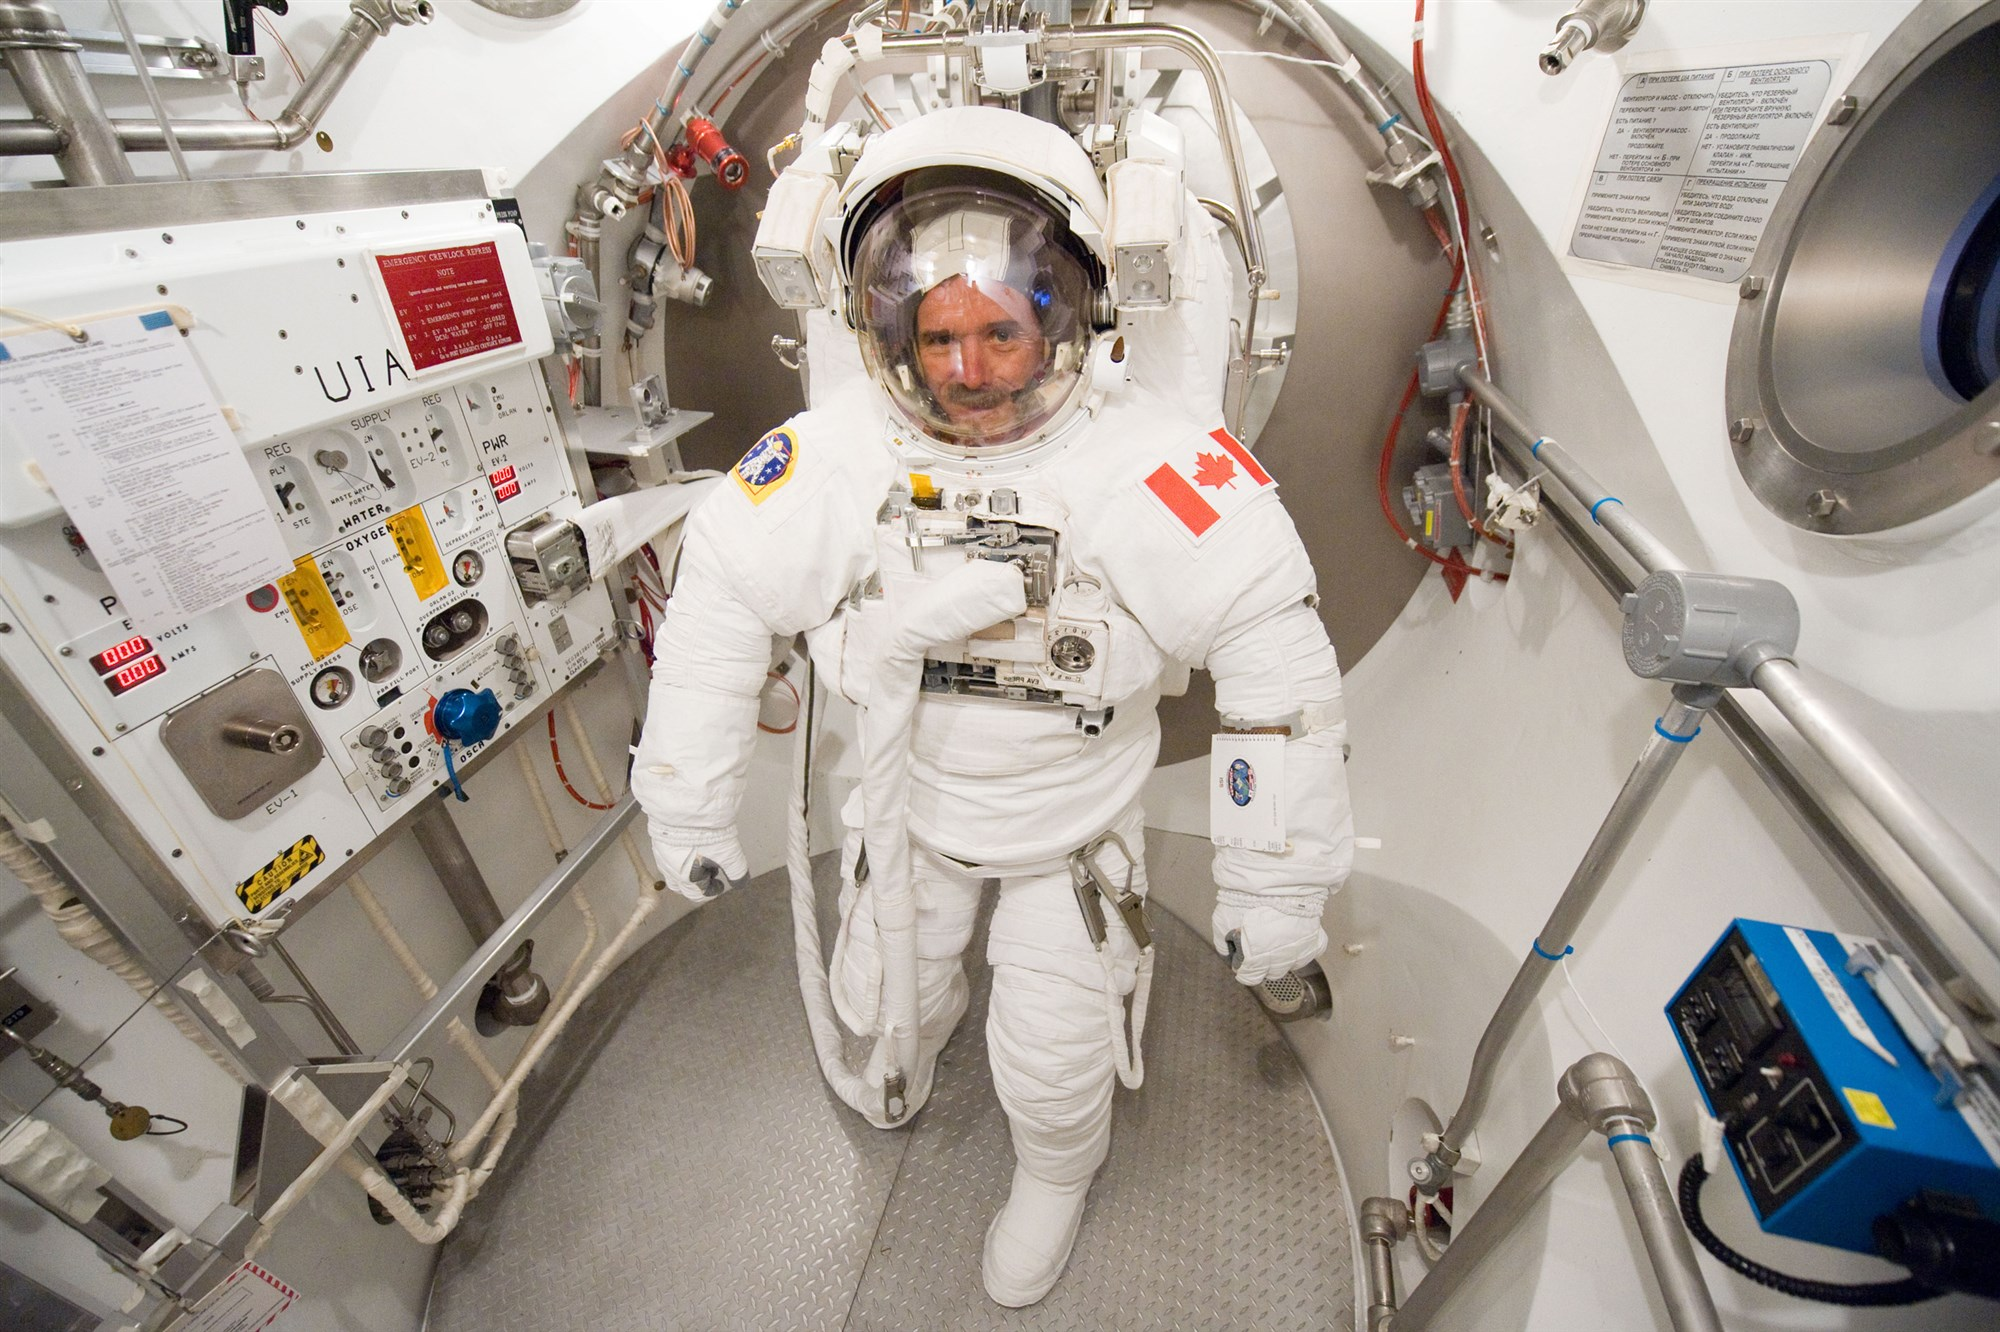 A picture of Chris Hadfield in a spacesuit.